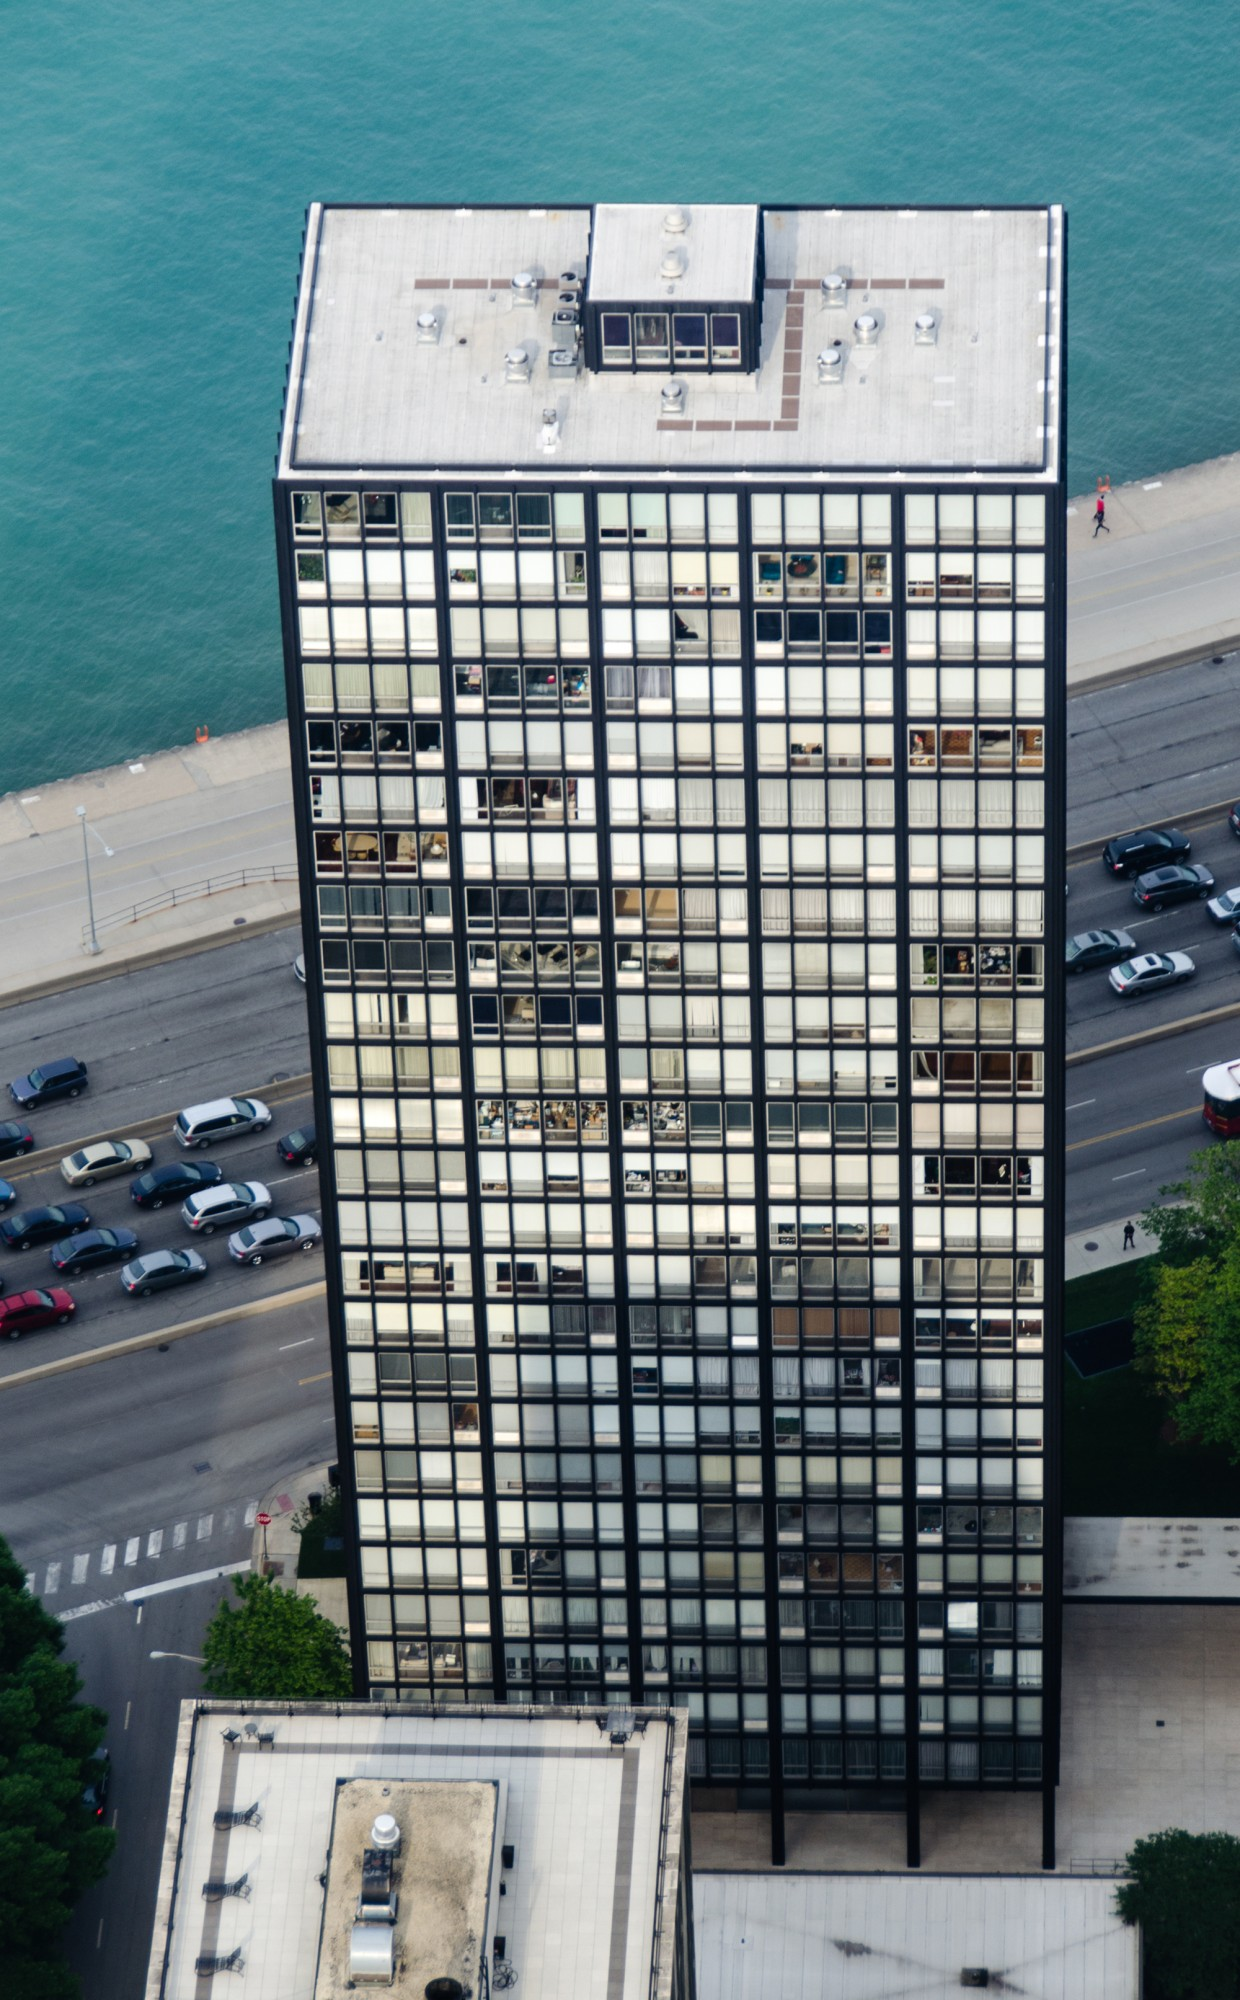 860880 North Lake Shore Drive Buildings Of Chicago Chicago